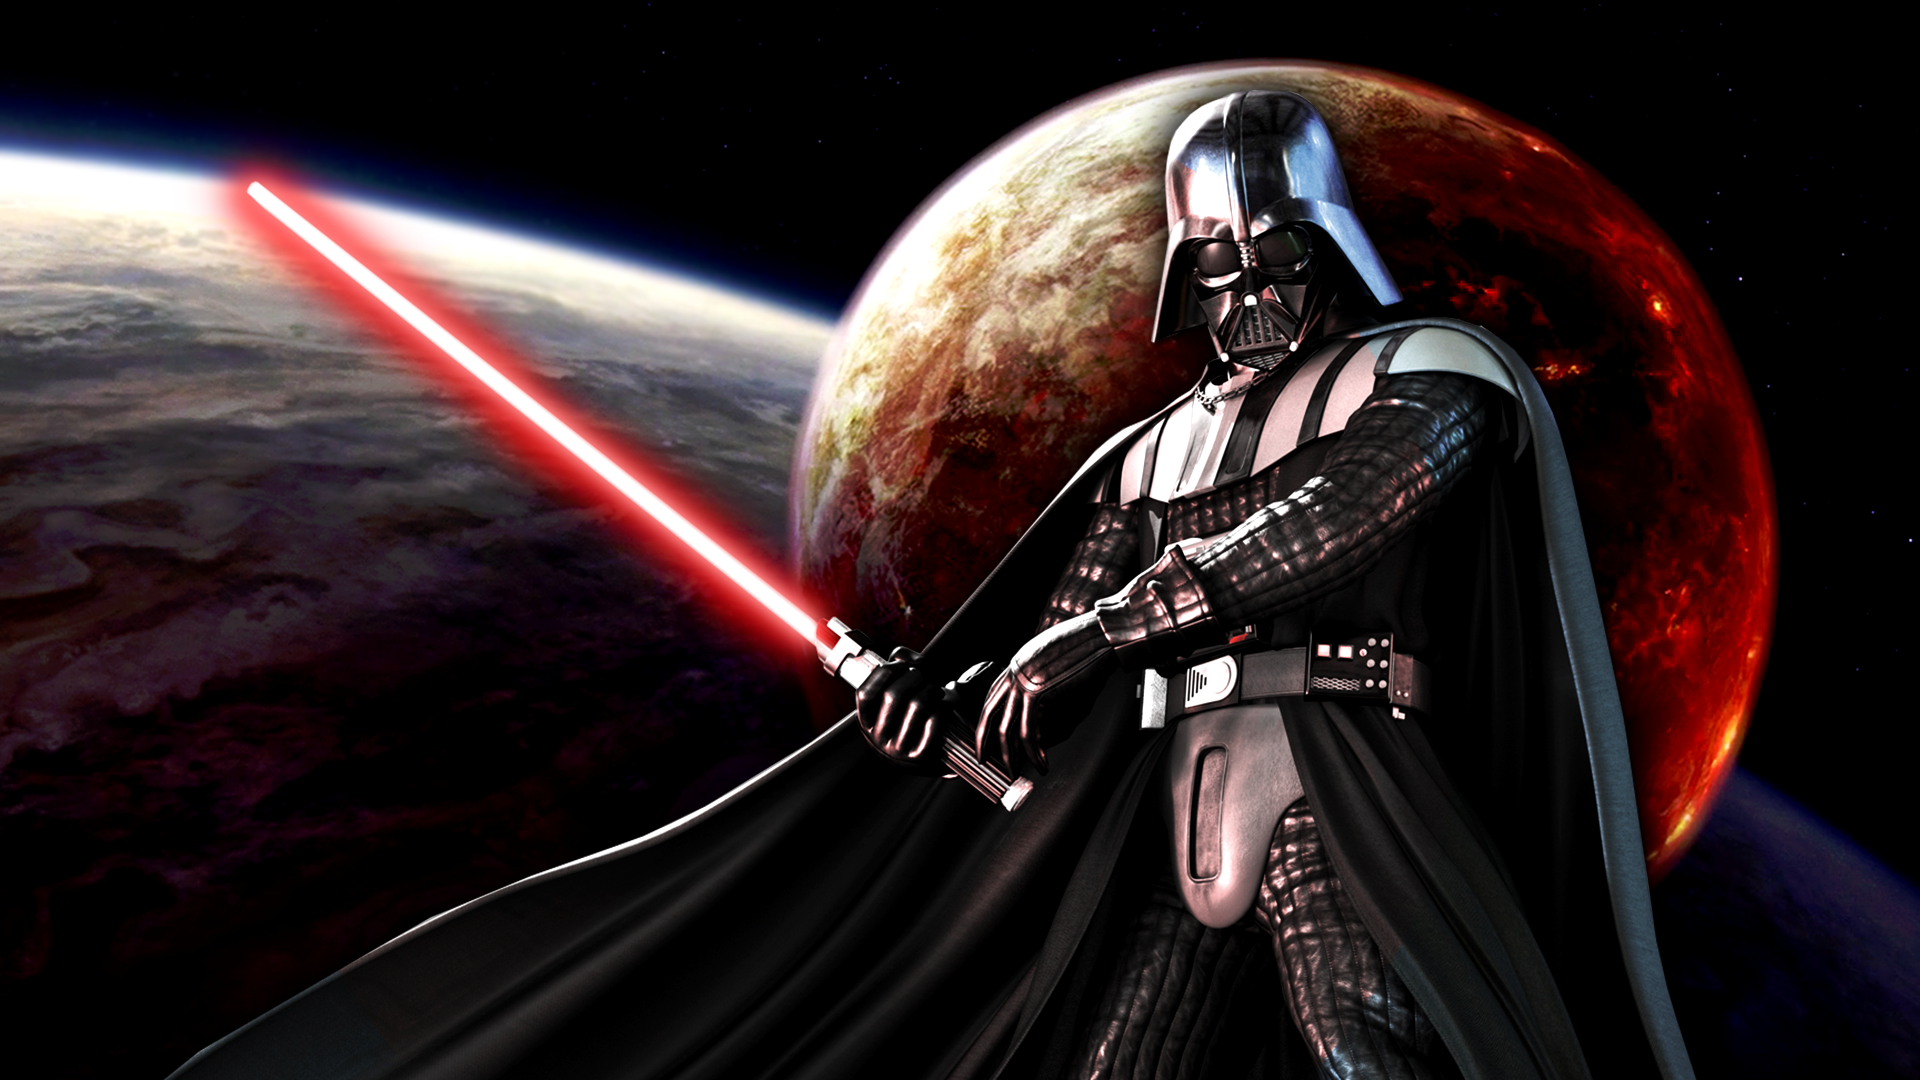 Star Wars Darth Vader Wallpapers High Quality Resolution